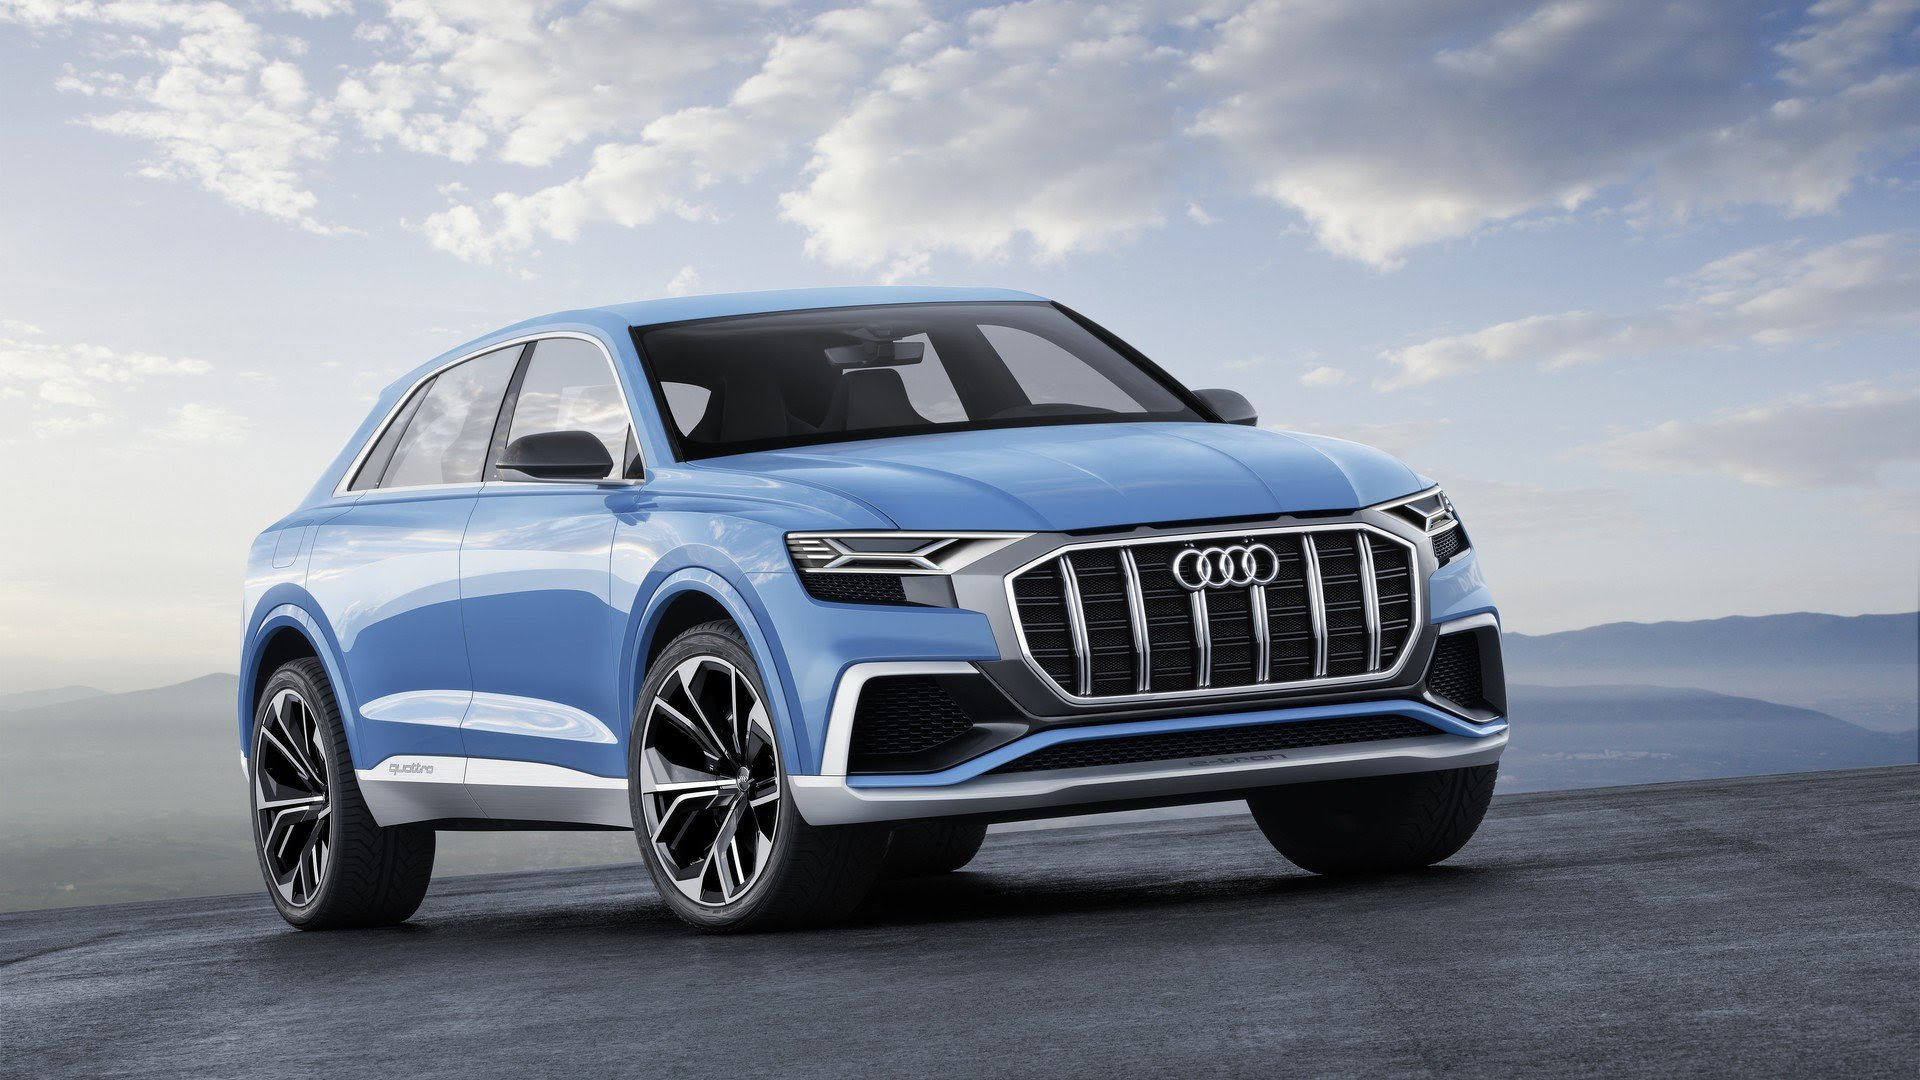 Audi Q4 production to start in 2019, Q8 in 2018 - Autodevot